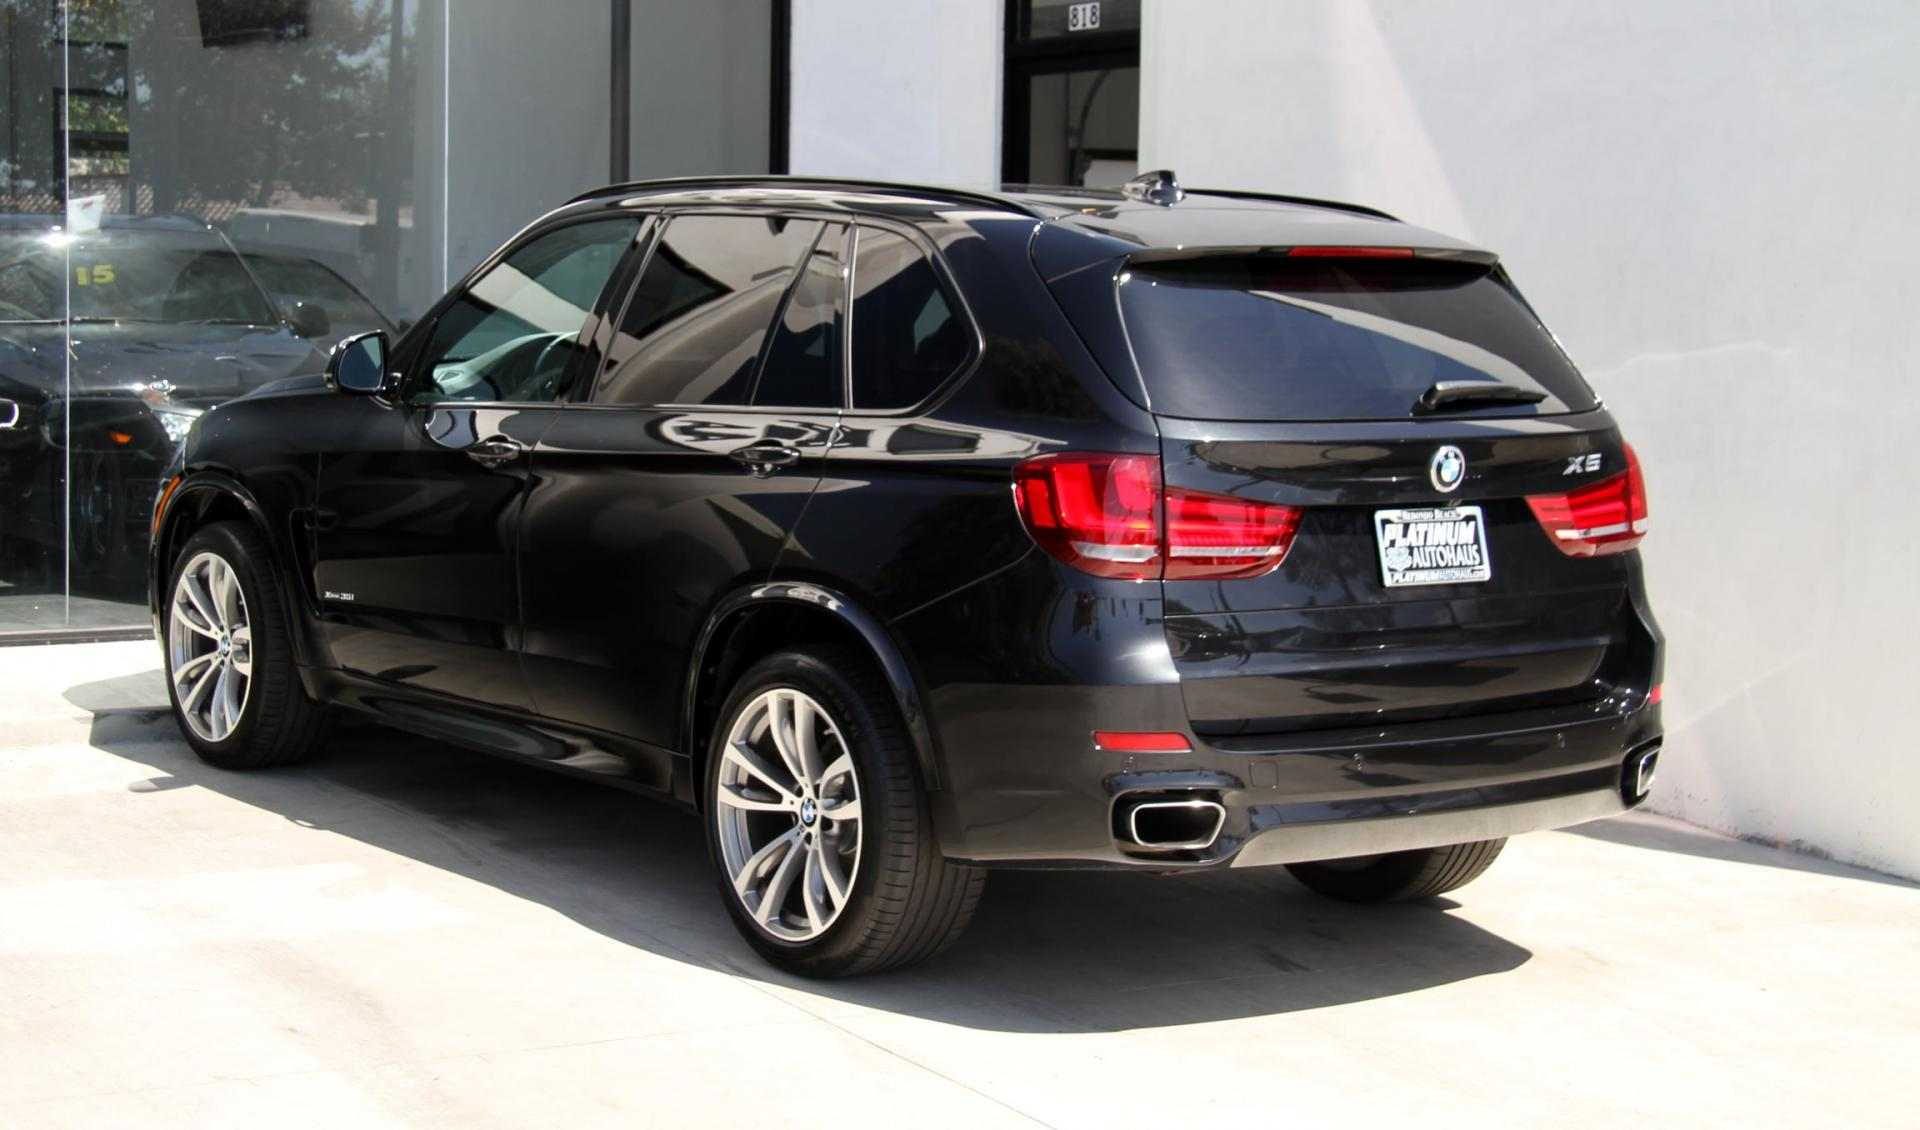 Wheels For Sale Near Me >> 2017 BMW X5 xDrive35i Stock # 6000 for sale near Redondo Beach, CA | CA BMW Dealer